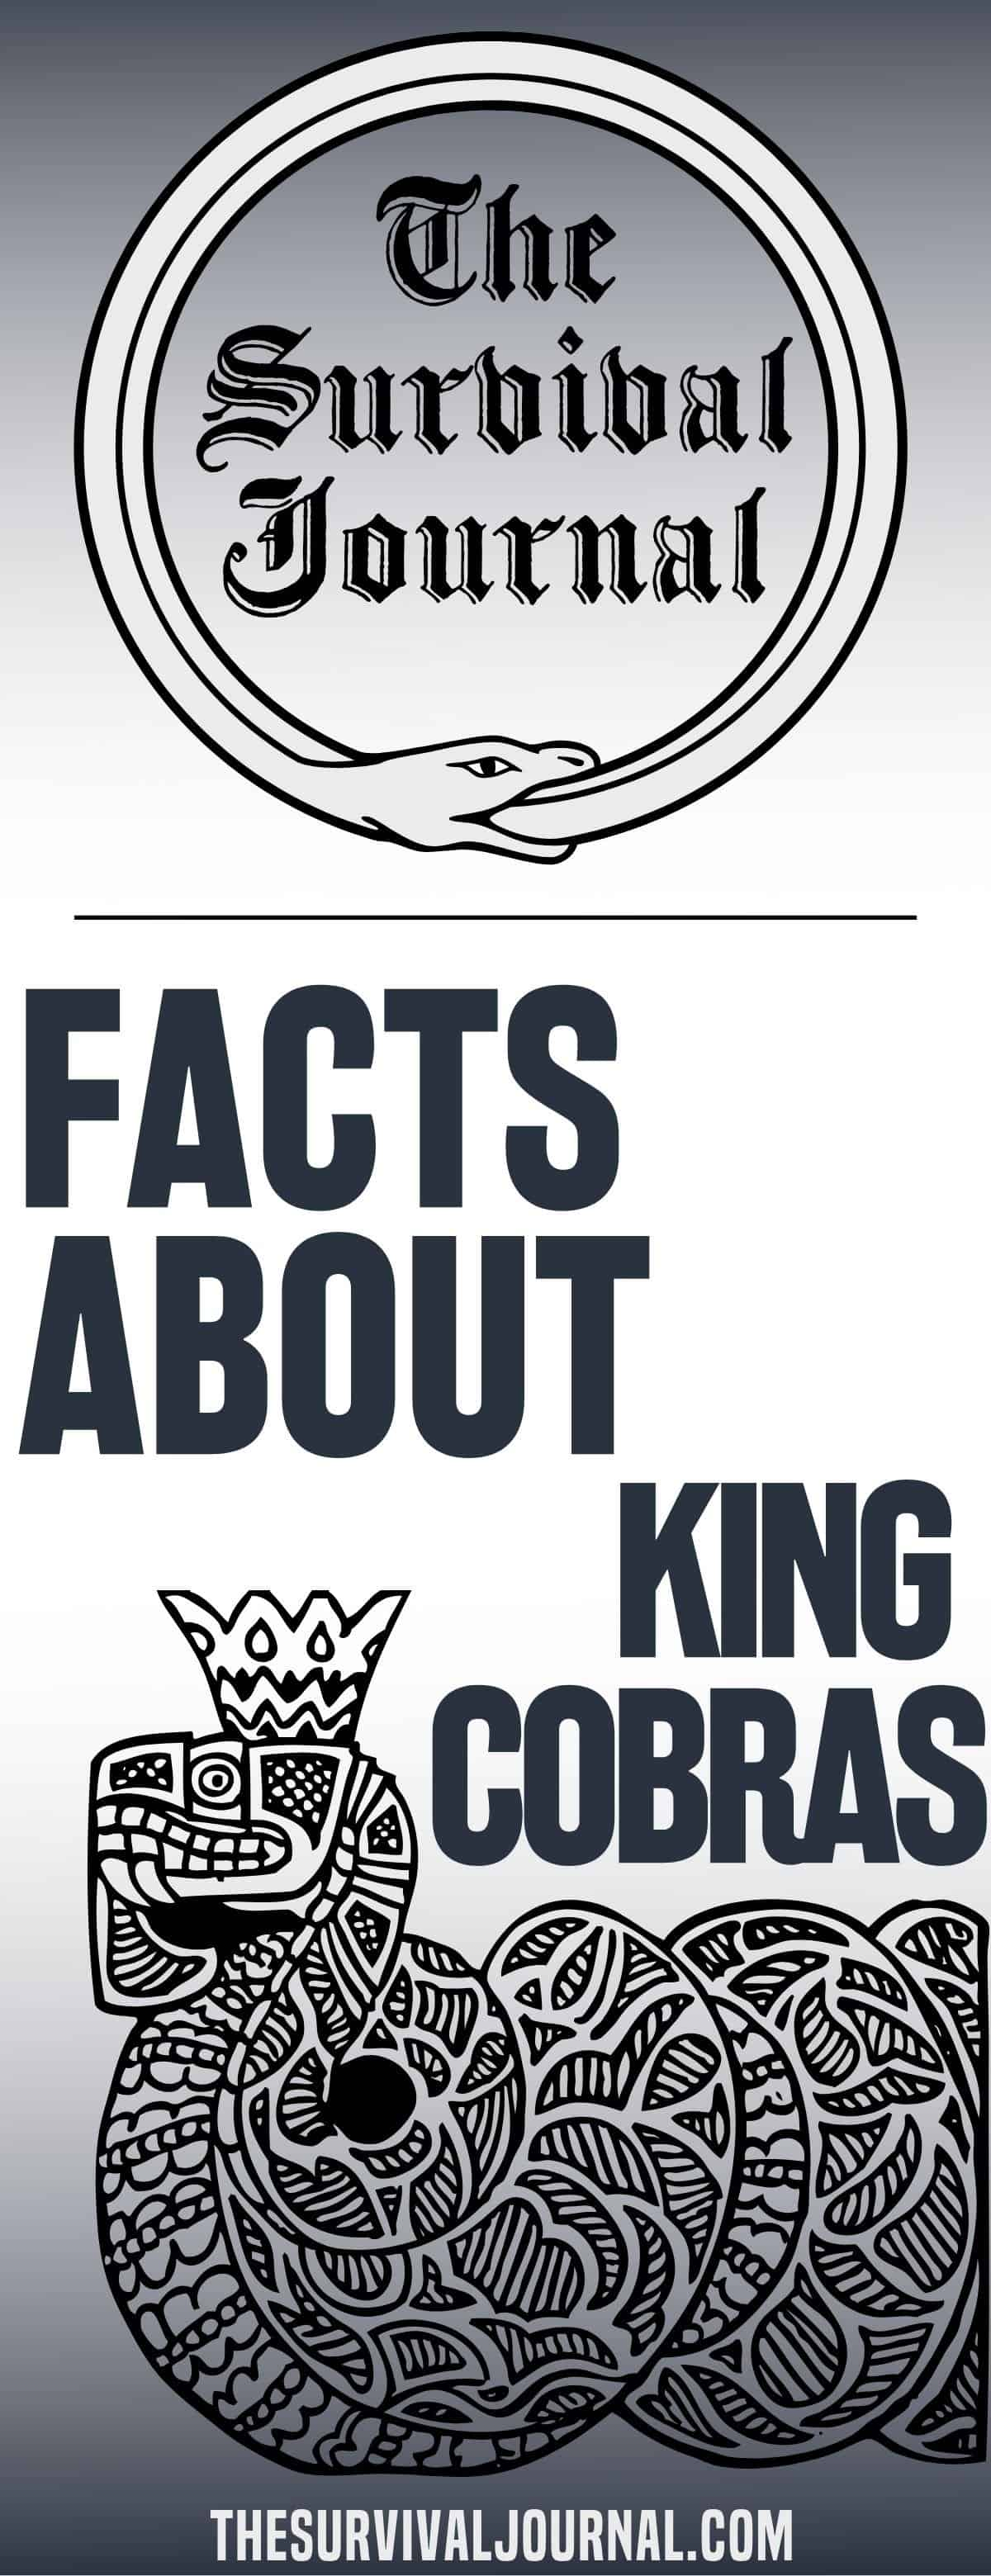 facts about king cobras